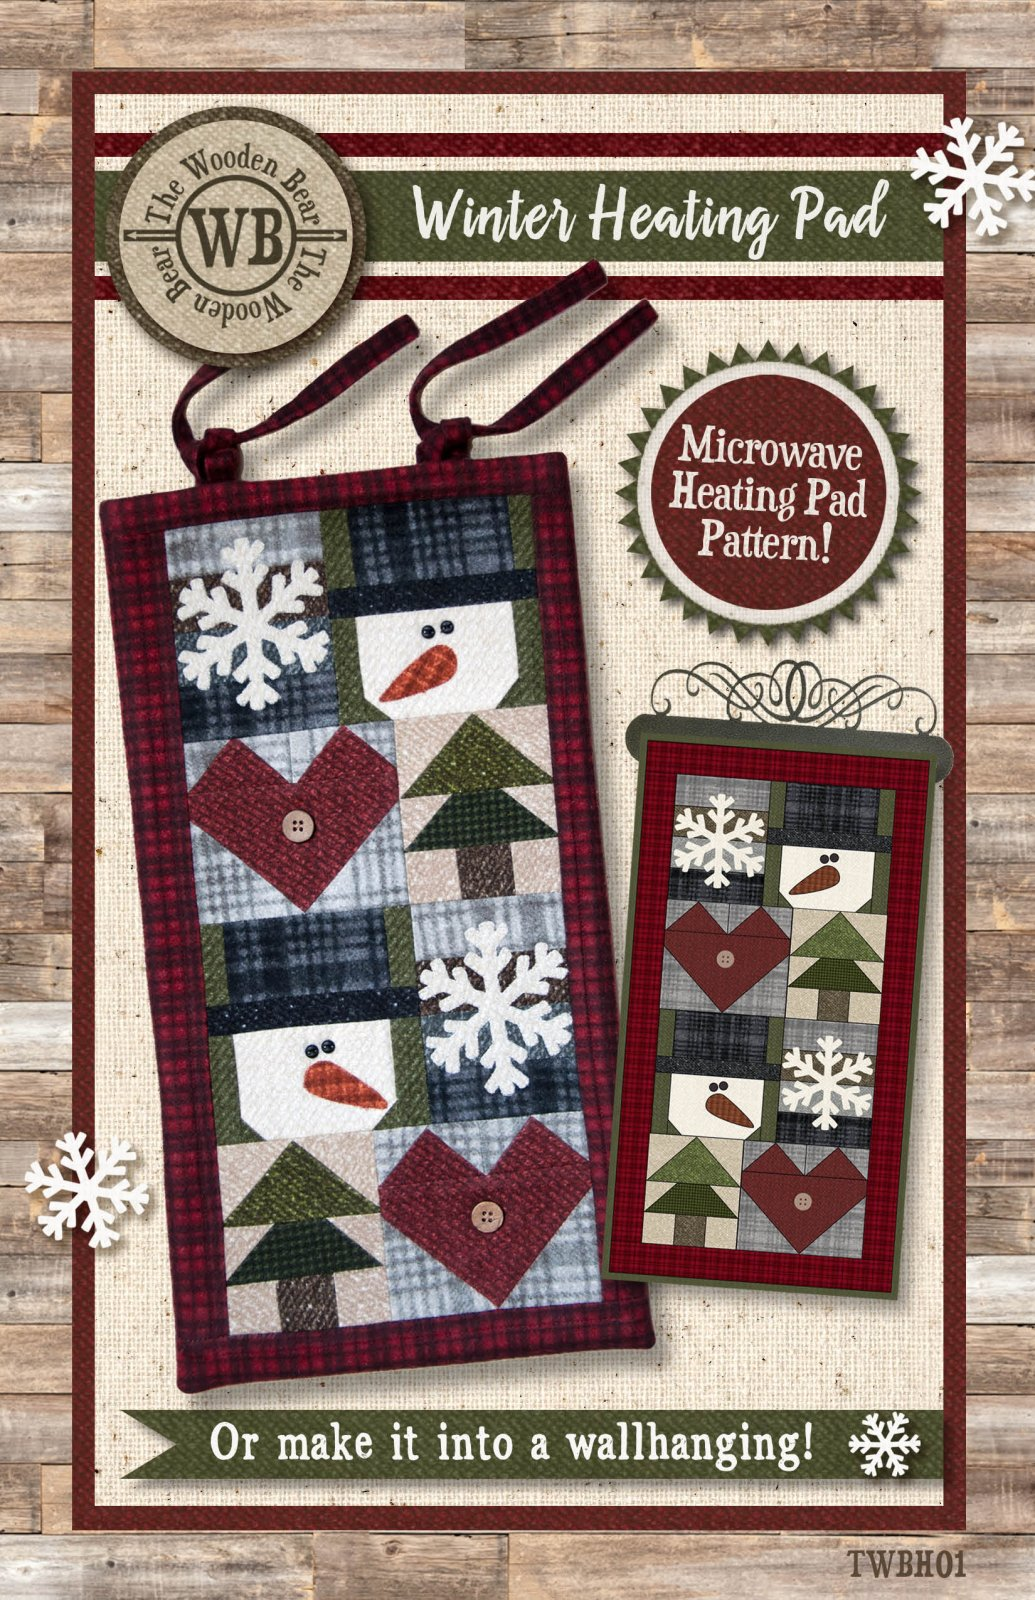 (TWBH01)  Winter Heating Pad or Wallhanging Pattern